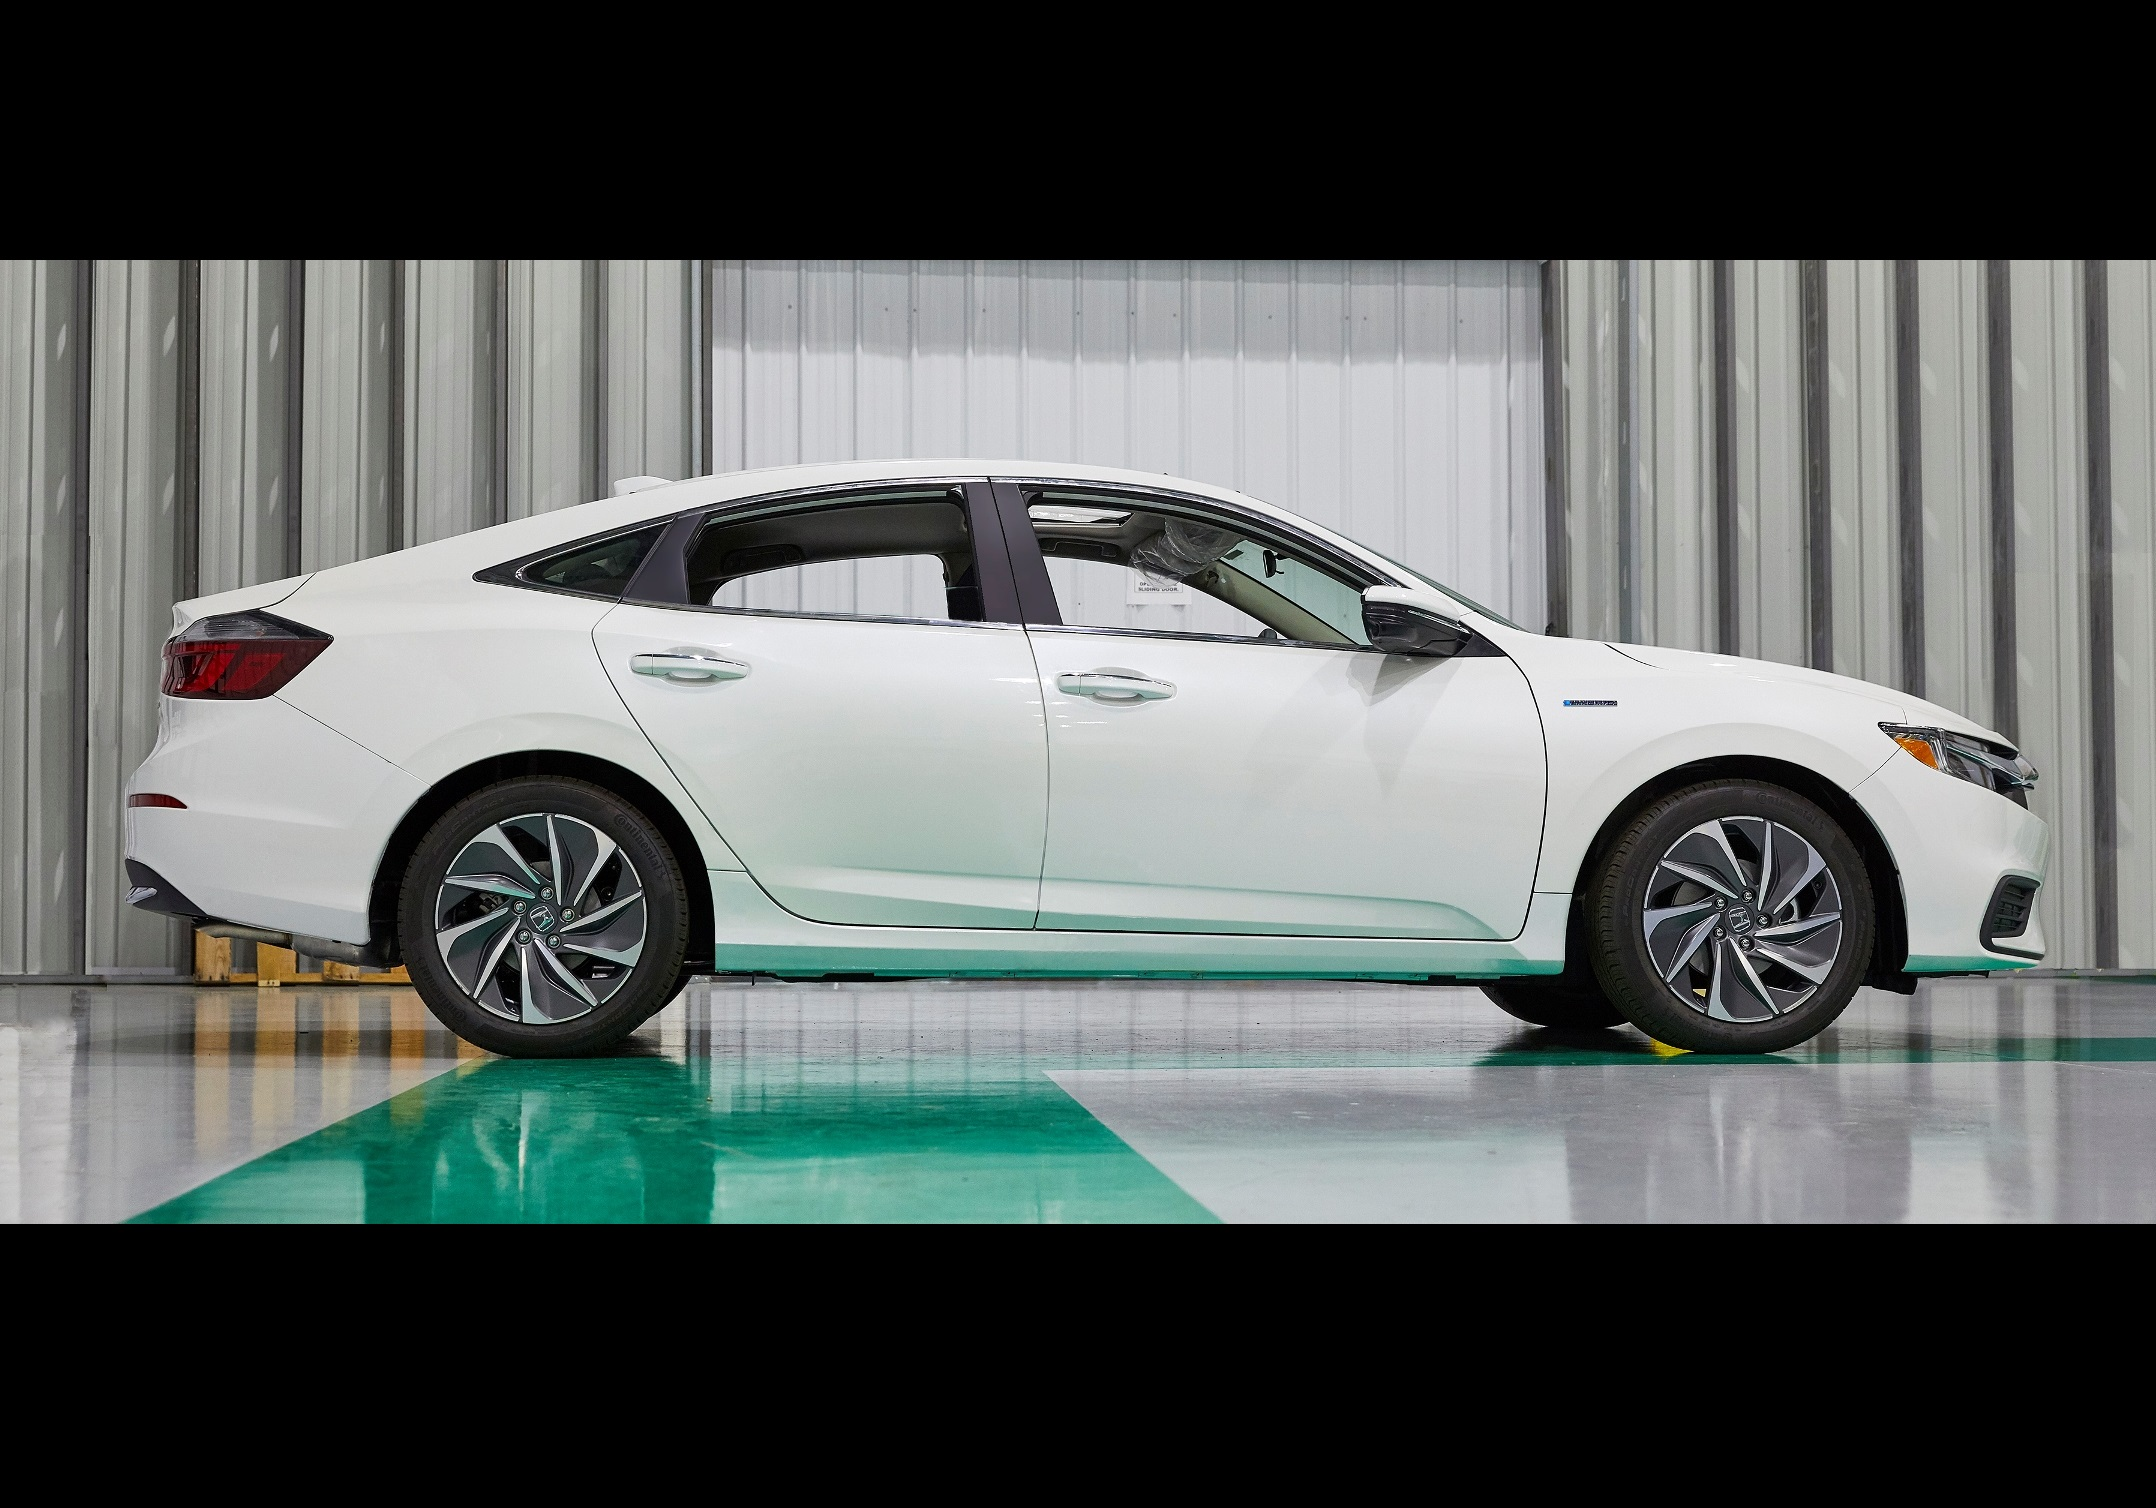 Honda Insight Launched Into Production At Greensburg Indiana Plant